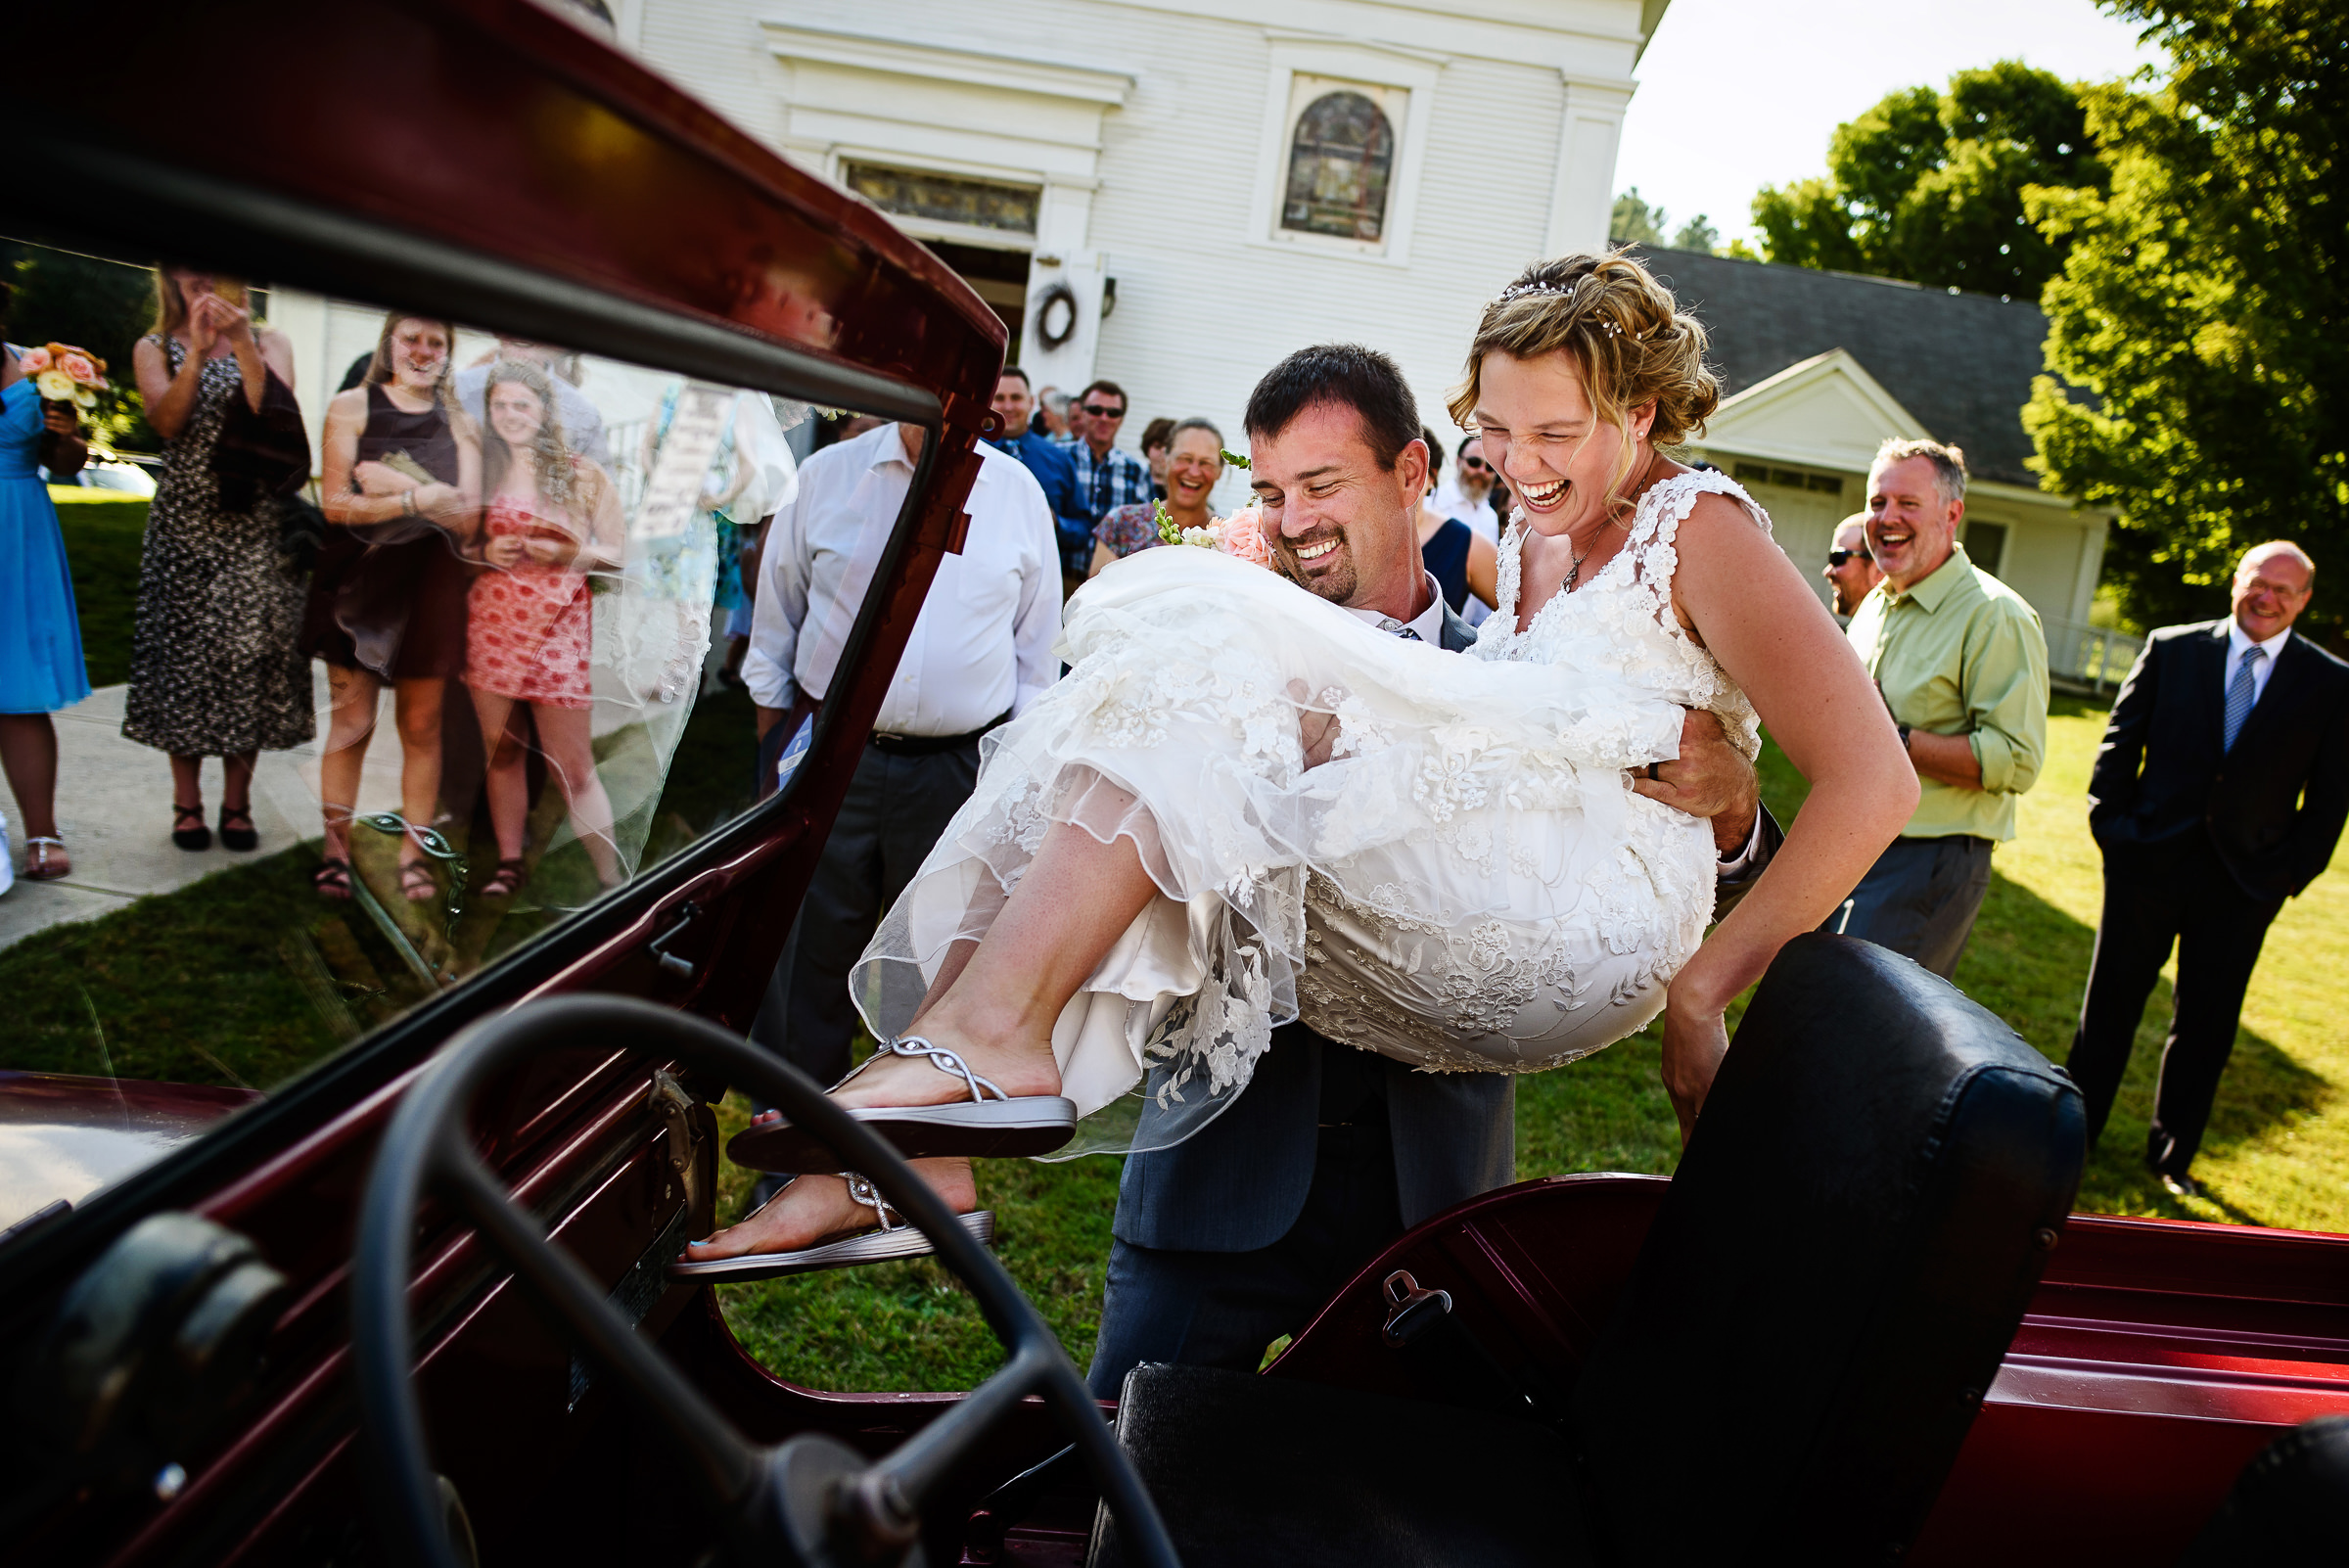 groom-picking-up-bride-happily-to-drop-her-into-the-getaway-car-after-ceremony-photo-by-hannah-photography